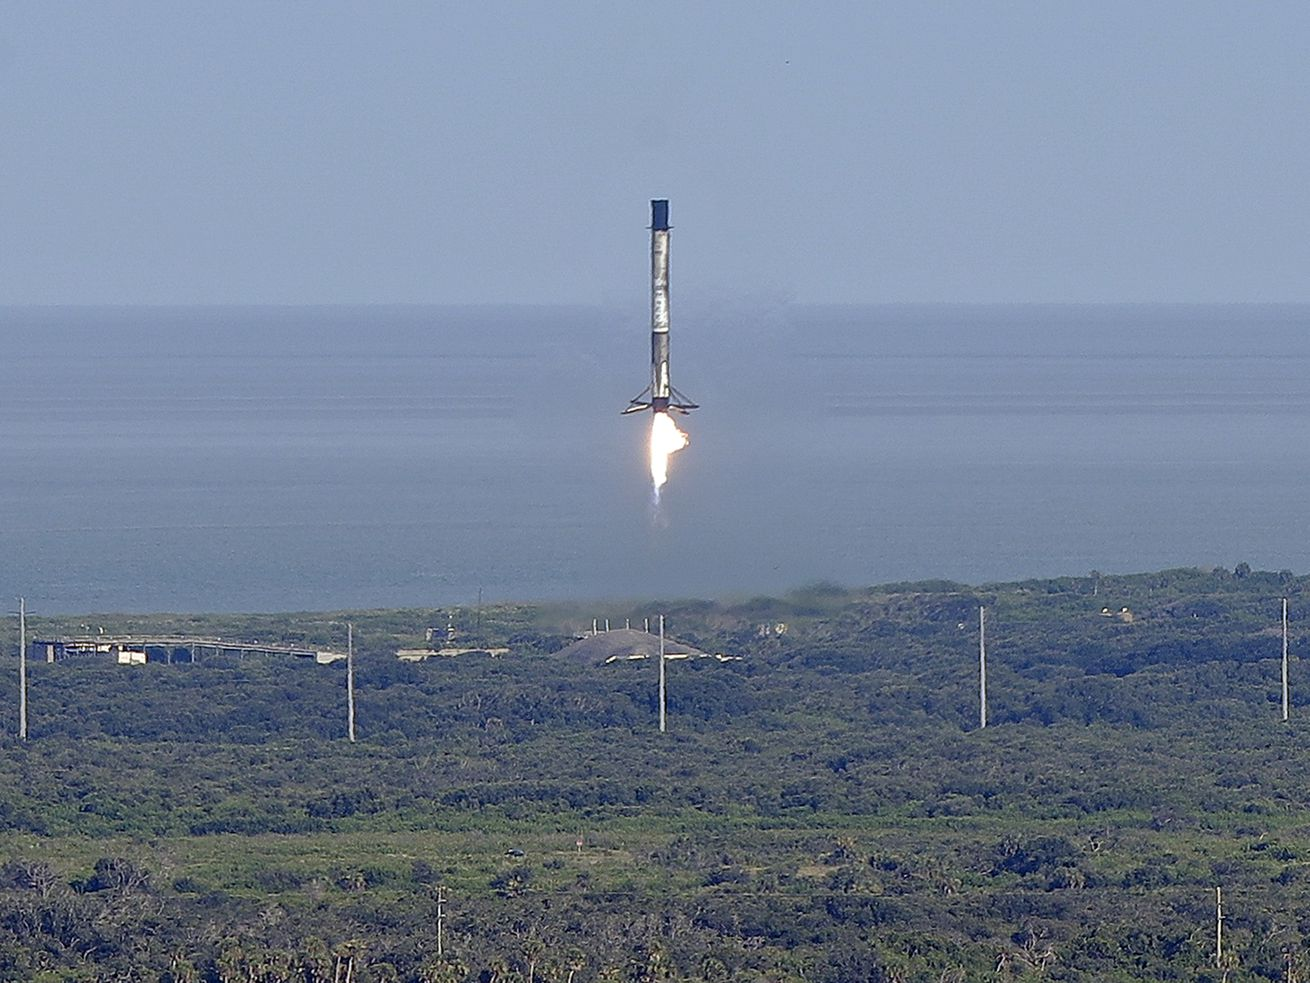 The U.S. Space Command will launch next week